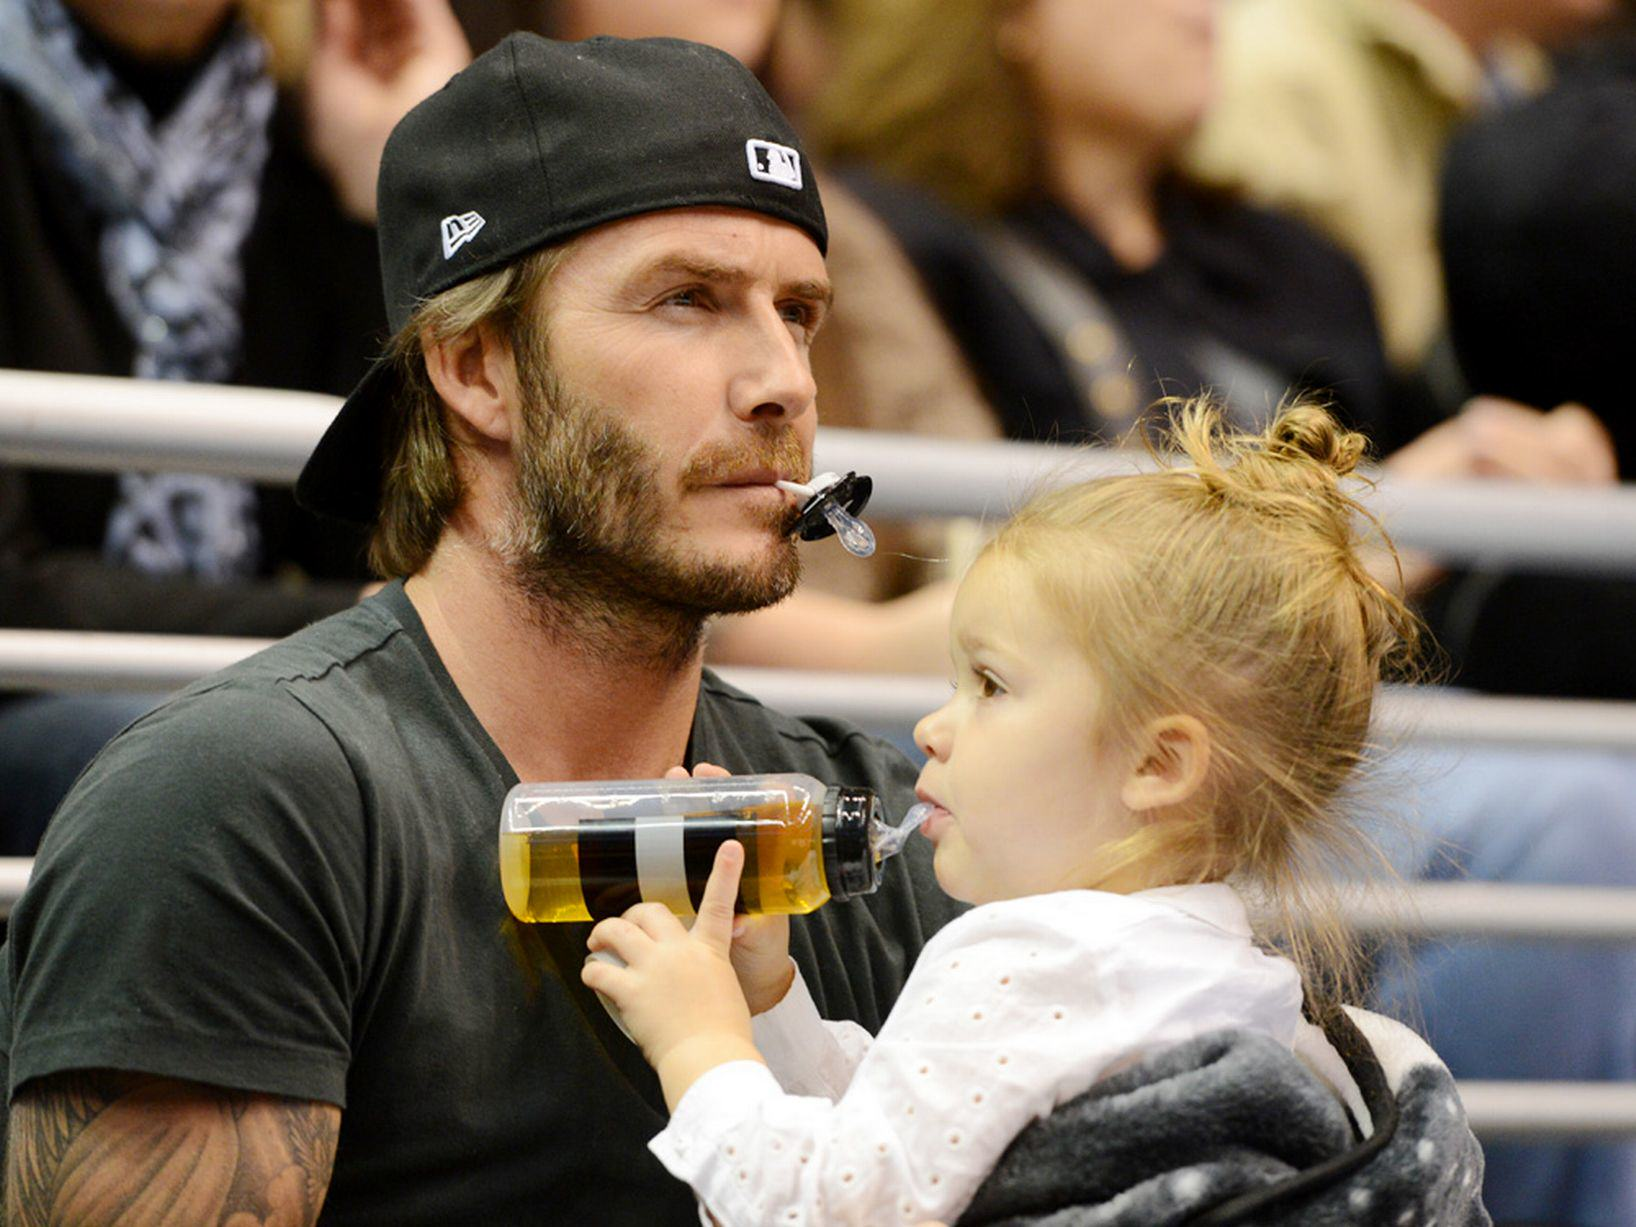 David Beckham Hits Out At Daily Mail Over Parenting Criticism UNILAD David Beckham and daughter Harper watch the Los Angeles Kings ice hockey team play Calgary Flames at the Staples5